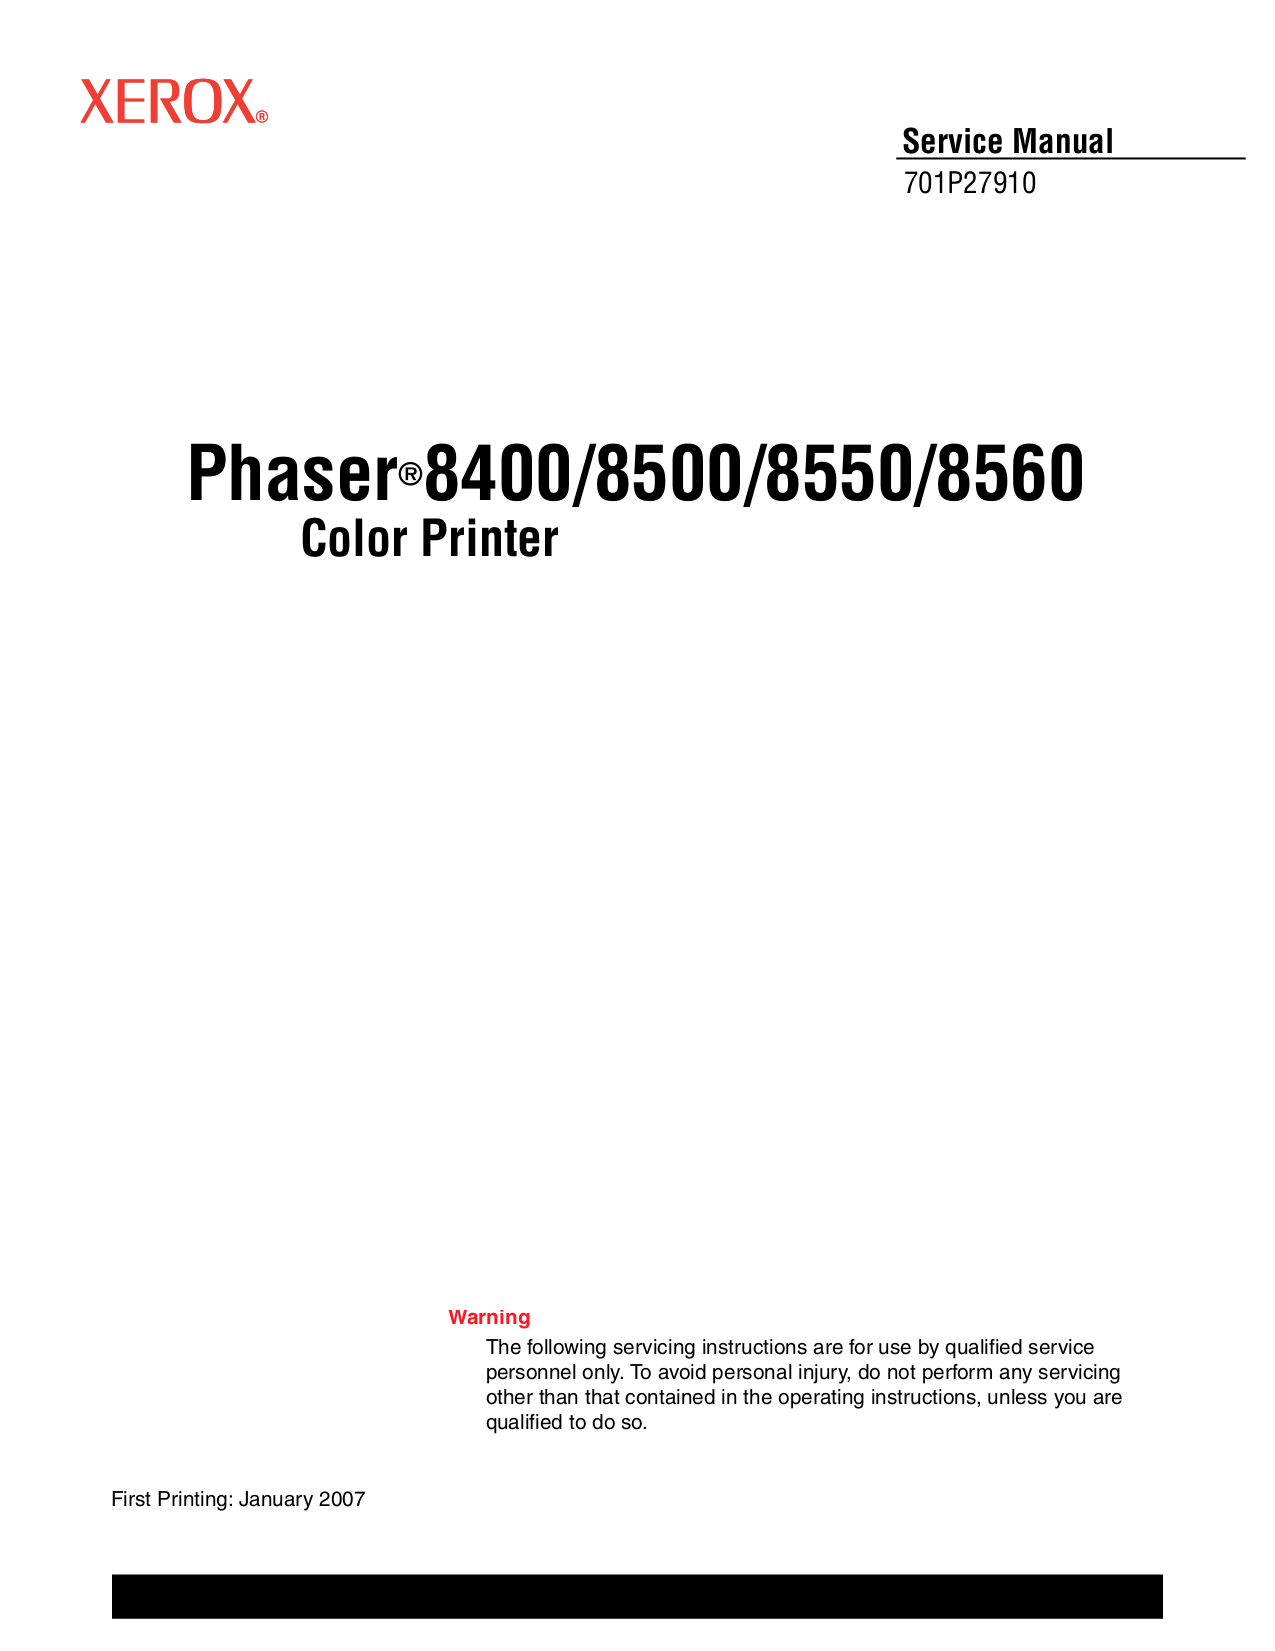 pdf manual for xerox printer phaser 450 rh umlib com xerox phaser 8400 service manual pdf Xerox Wallpaper